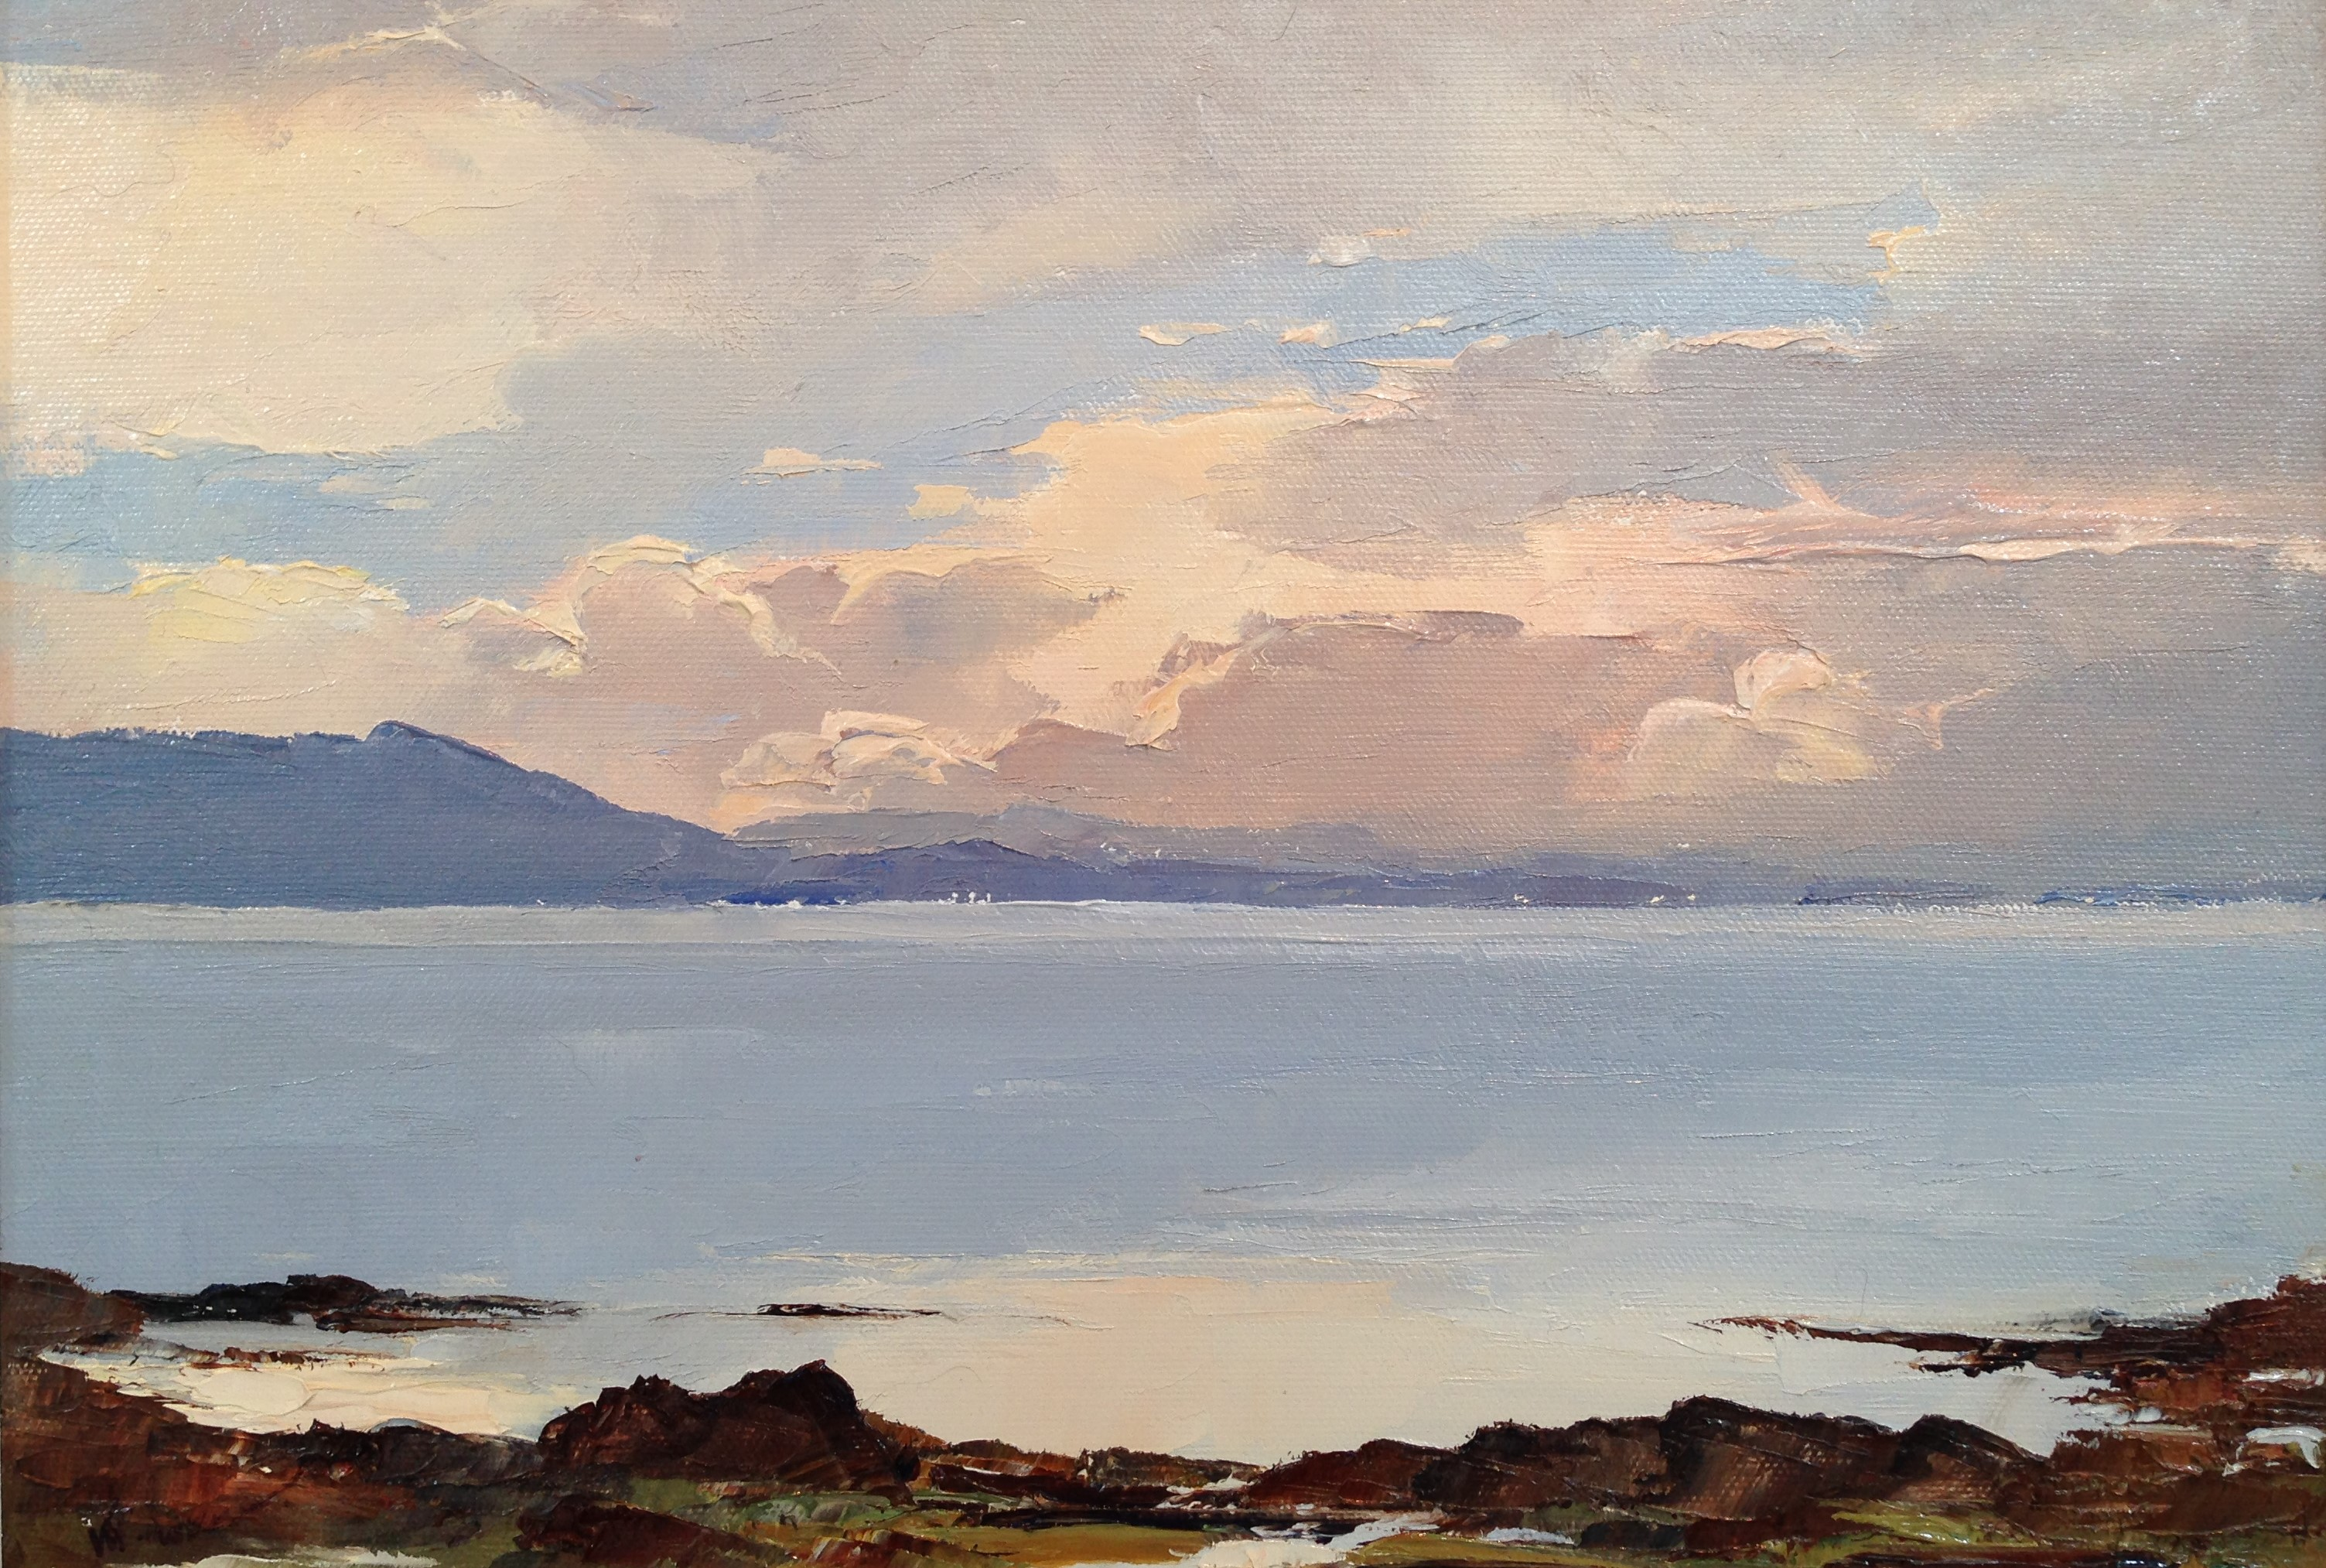 Dawn Over the Sound of Sleat